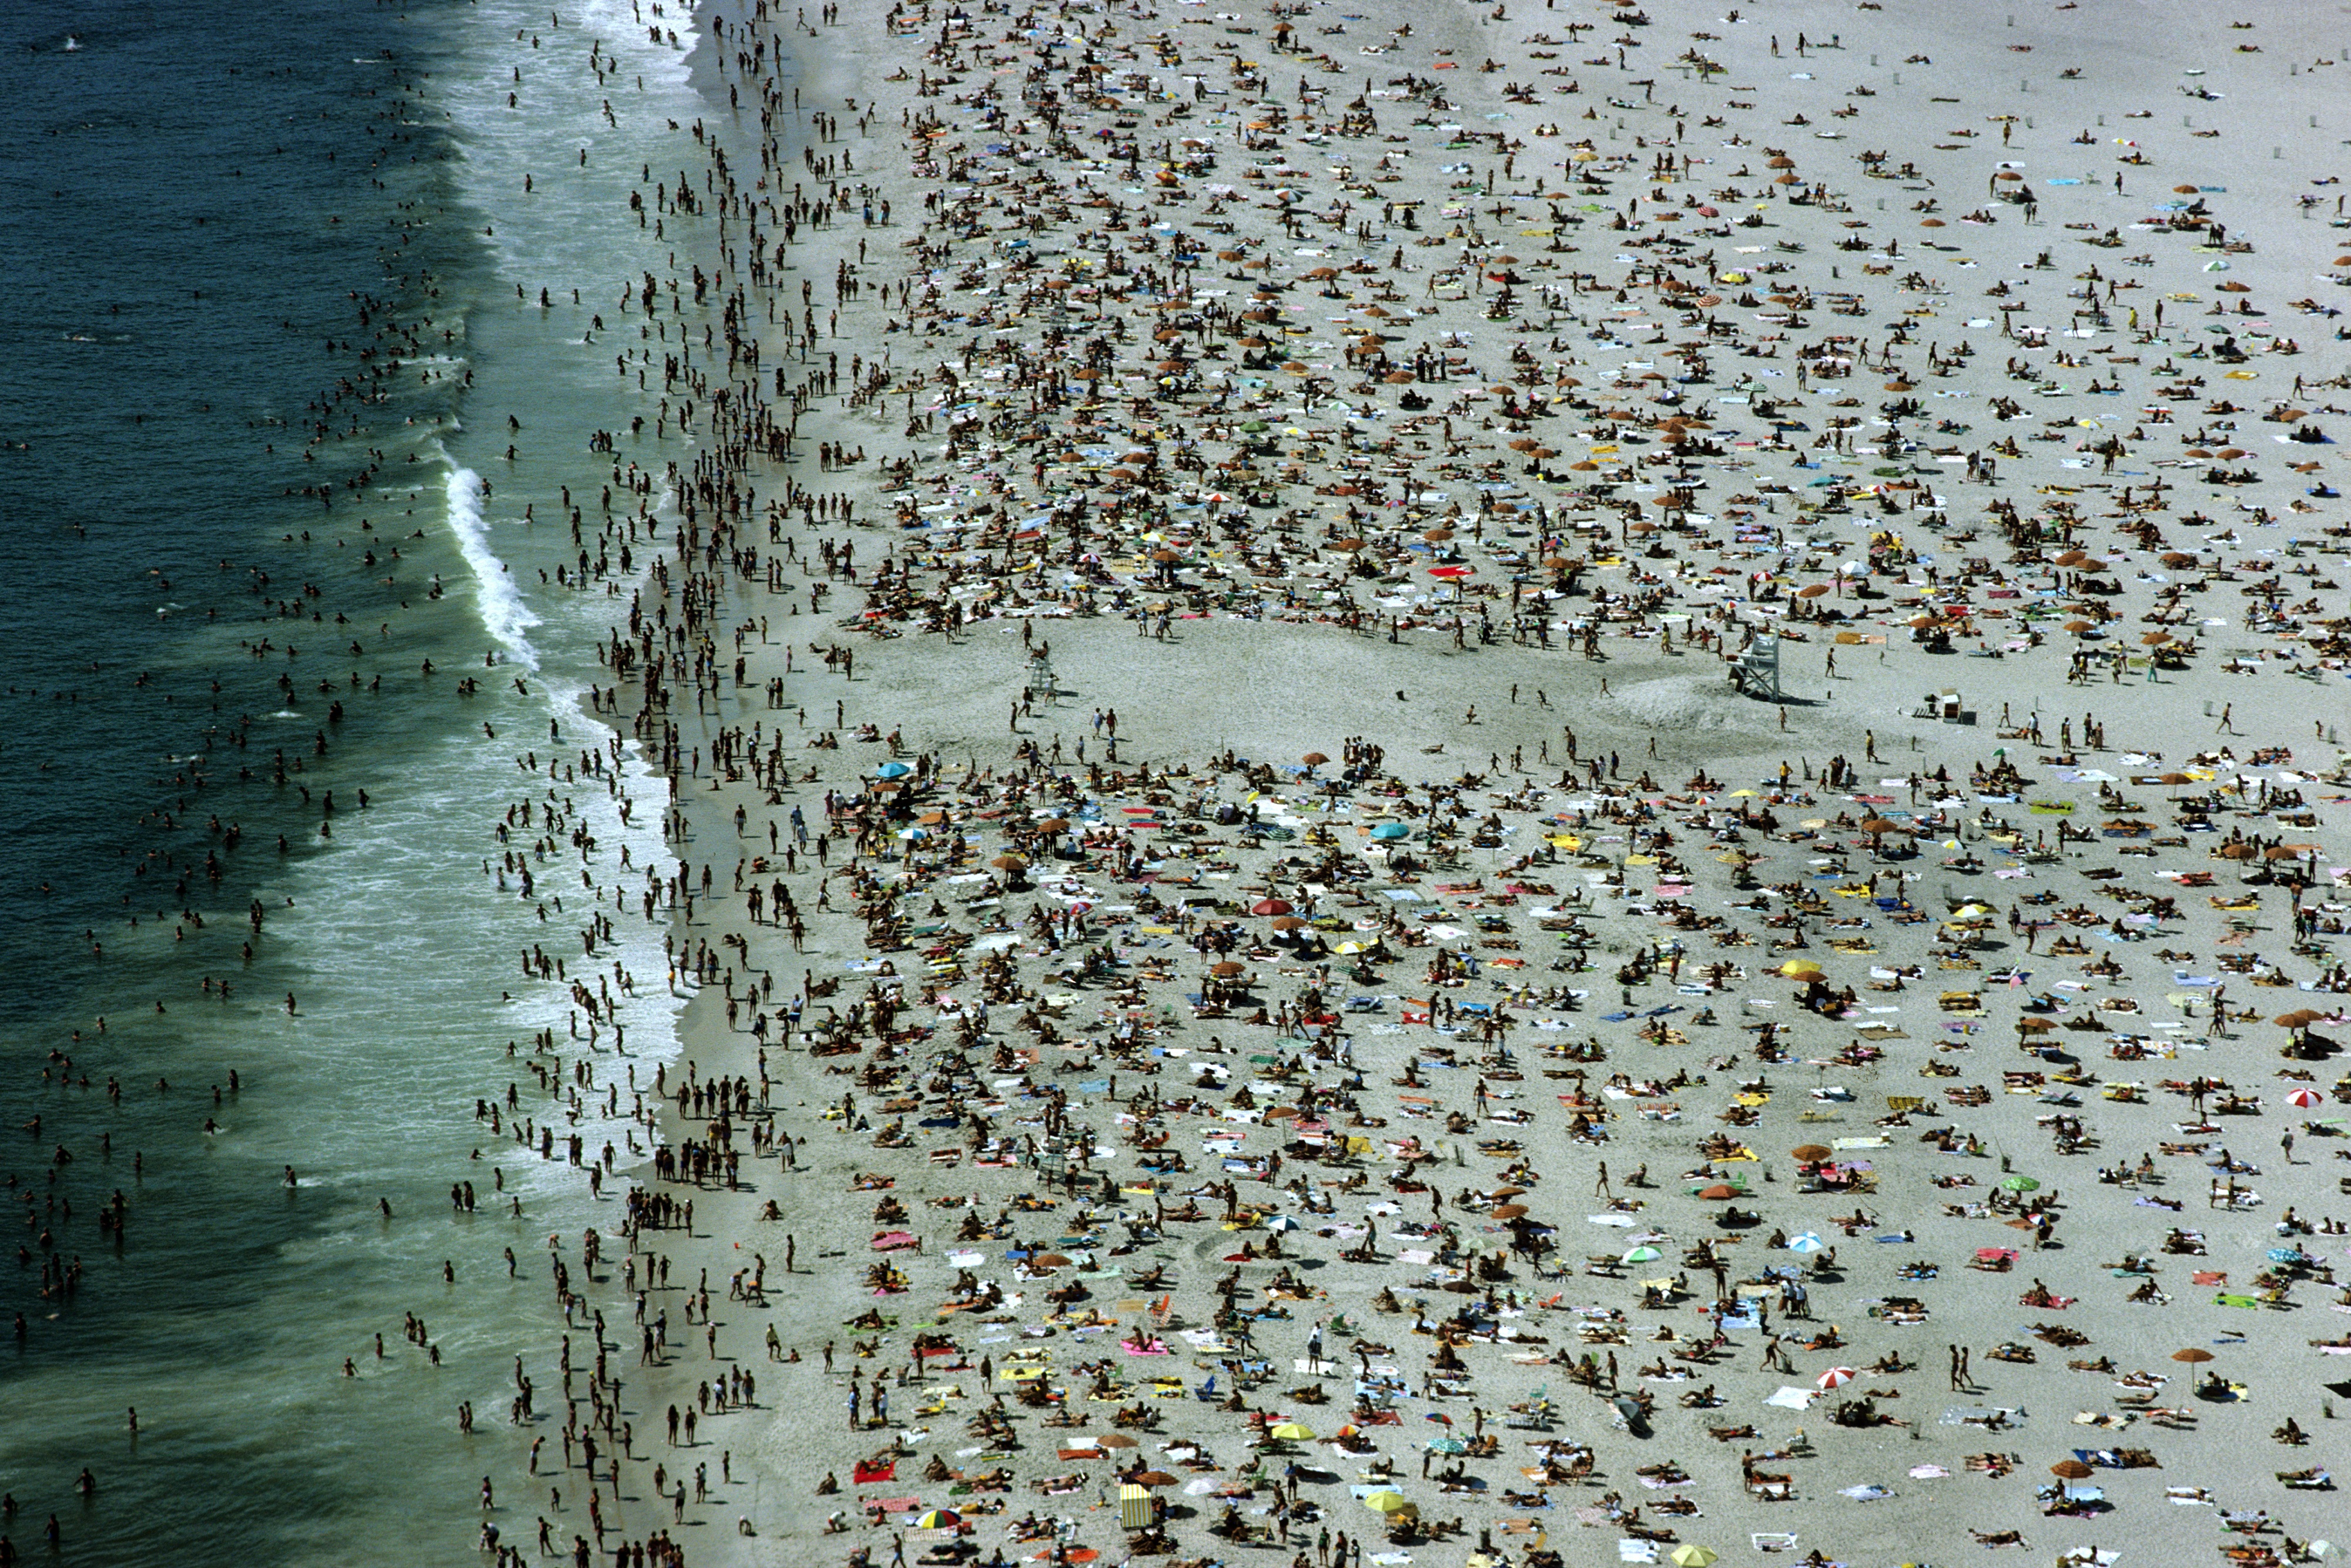 Slide 28 of 39: Aerial view of sunbathers and swimmers enjoying a summer day at the beach. (Photo by ANDREW HOLBROOKE/Corbis via Getty Images)